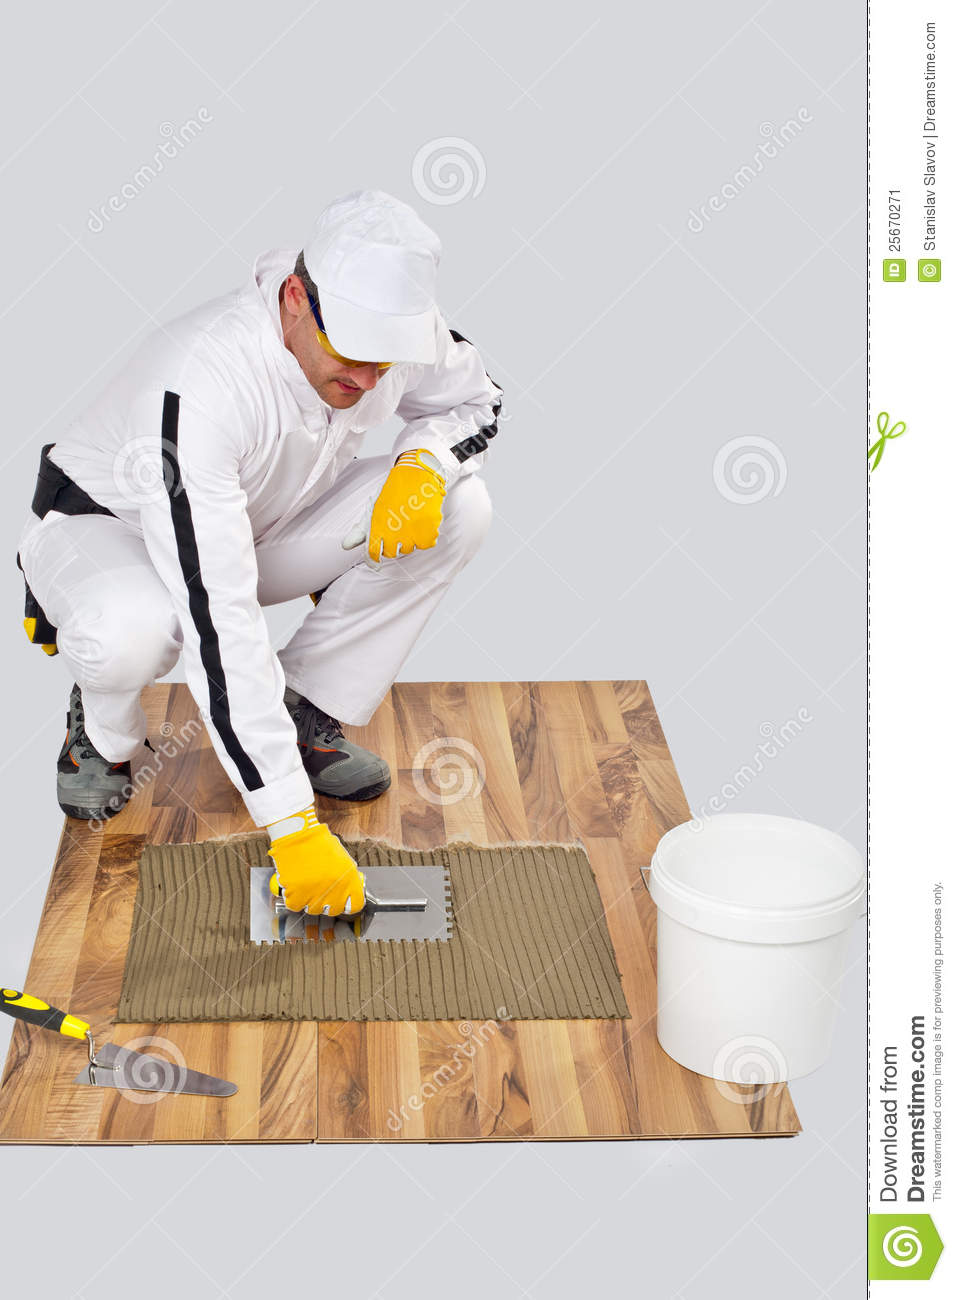 Floor Tile Workers : Worker diy tile adhesive trowel wooden floor stock image